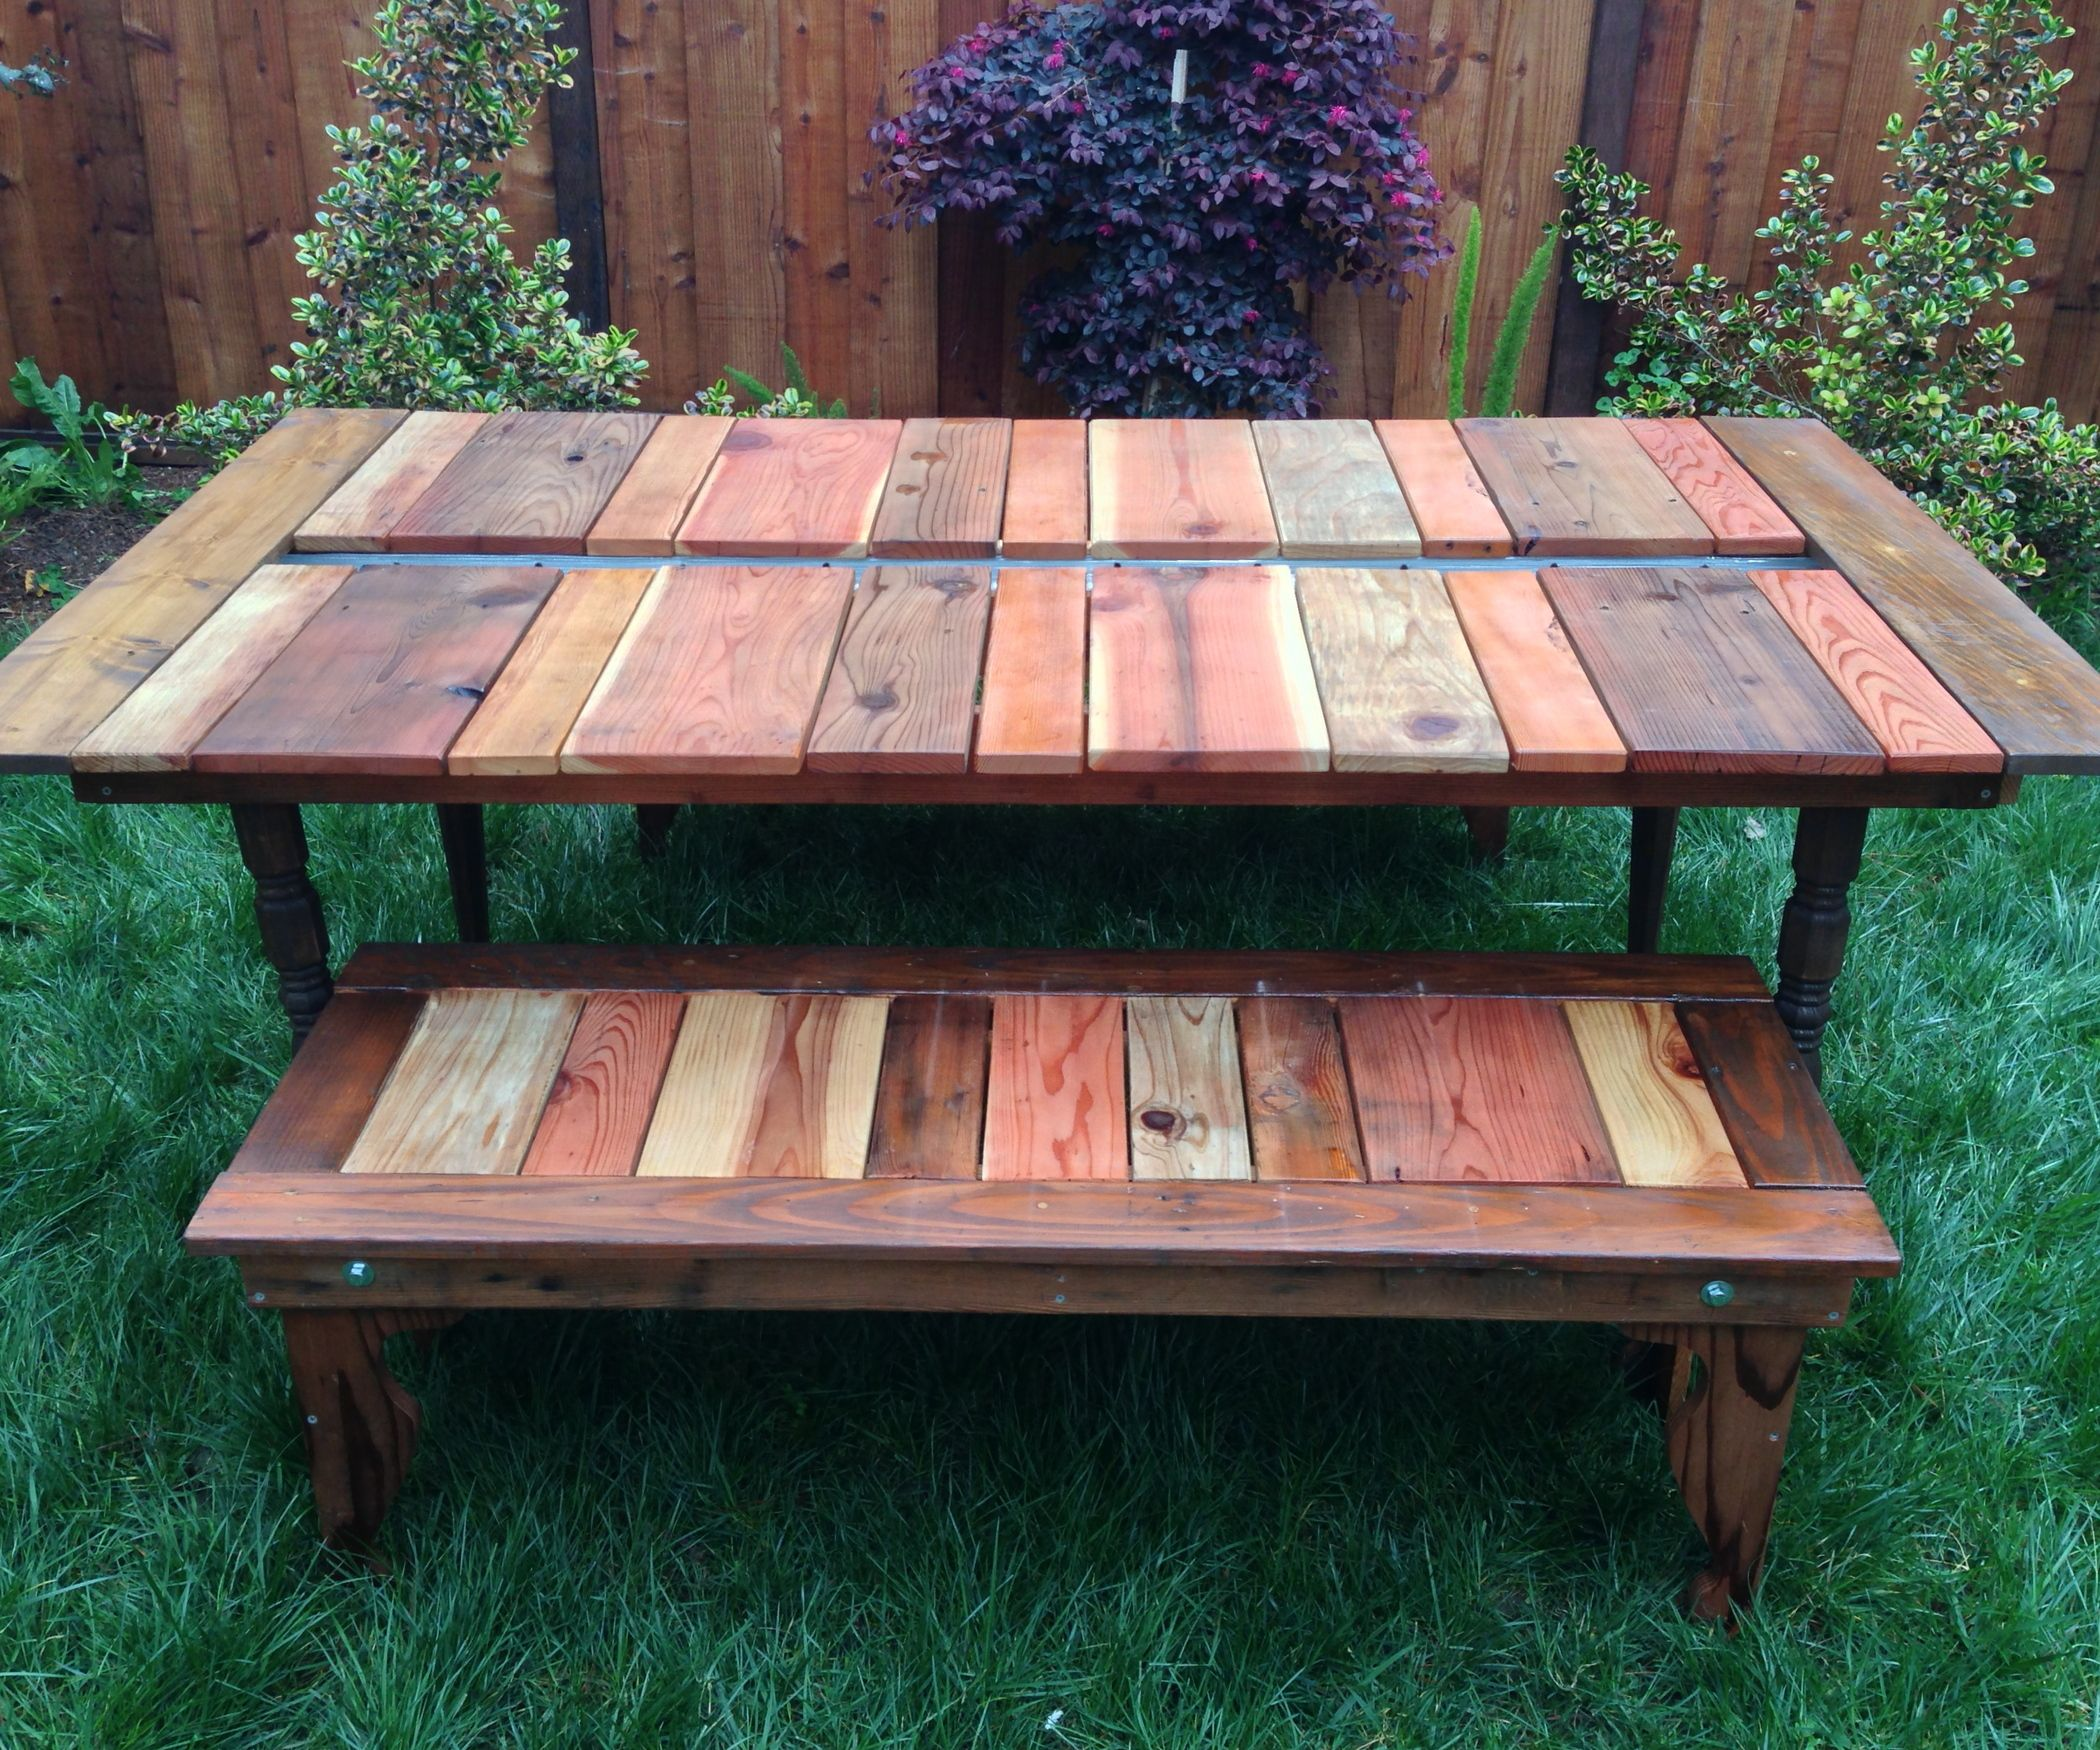 Reclaimed Wood Flat Pack Picnic Table With Planter Ice Trough